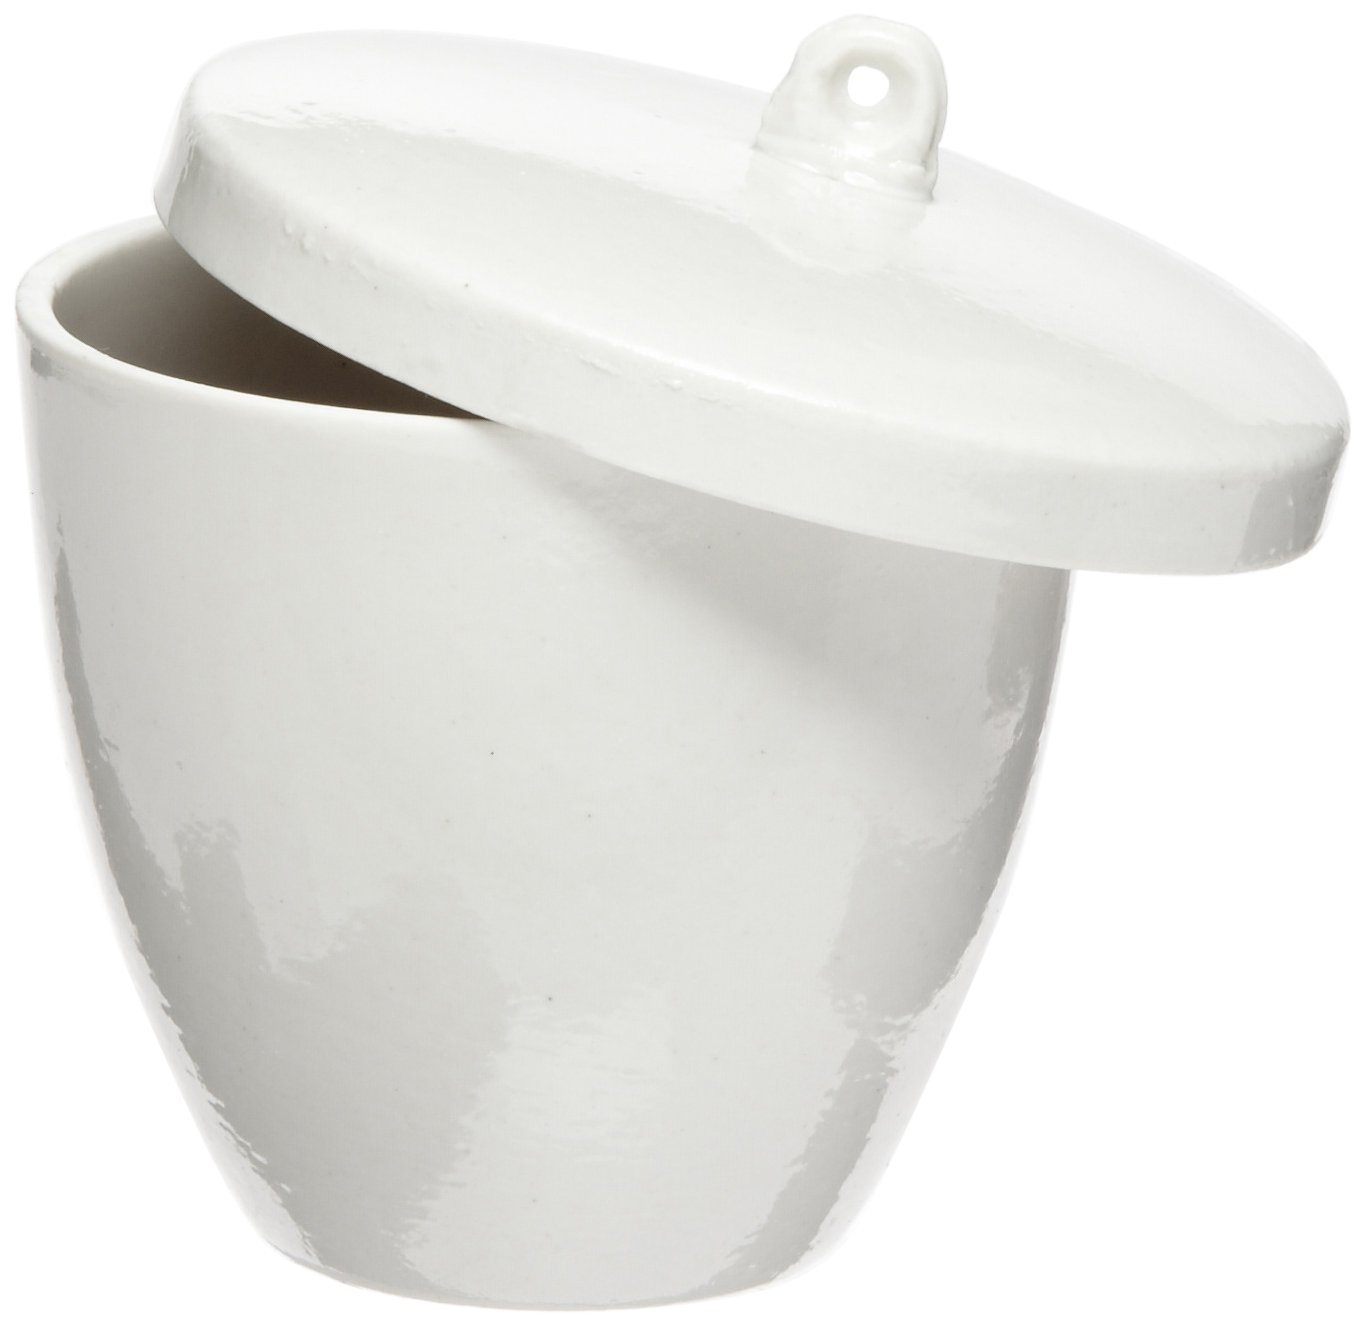 American Educational High Form Porcelain Crucible with Lid, 100mL Capacity (Bundle of 10)